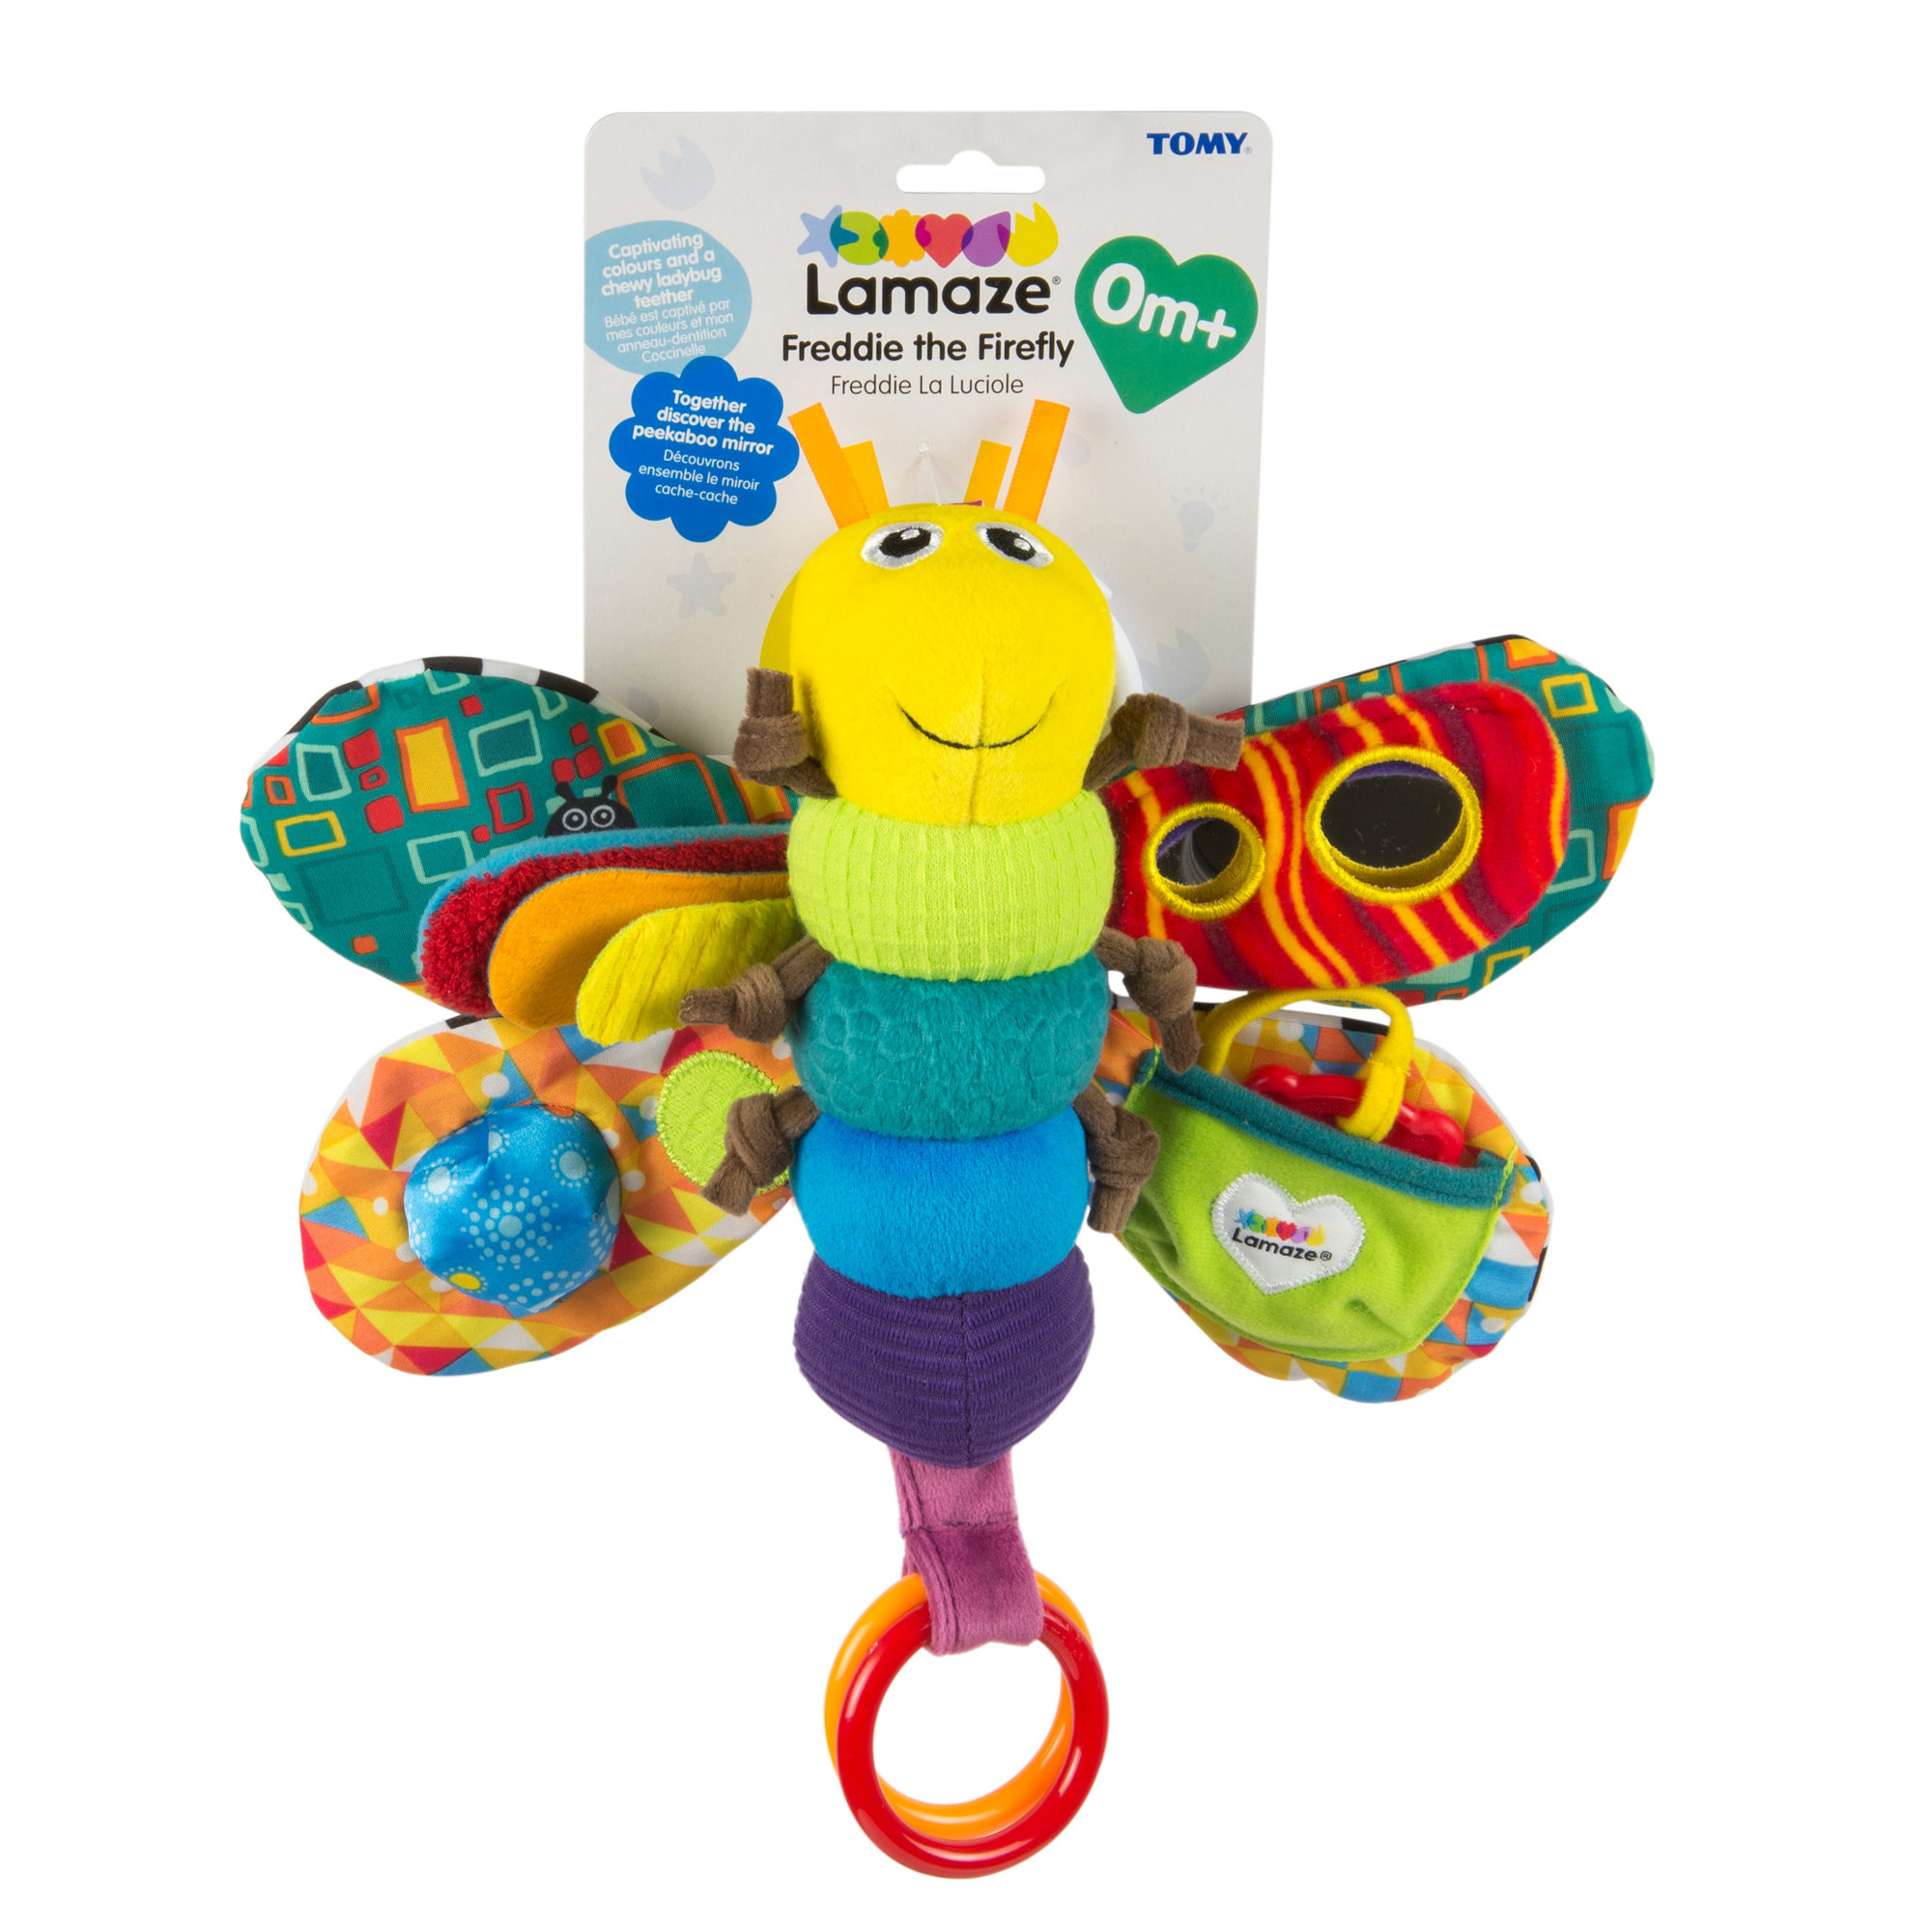 Lamaze Freddie The Firefly Soft Toy